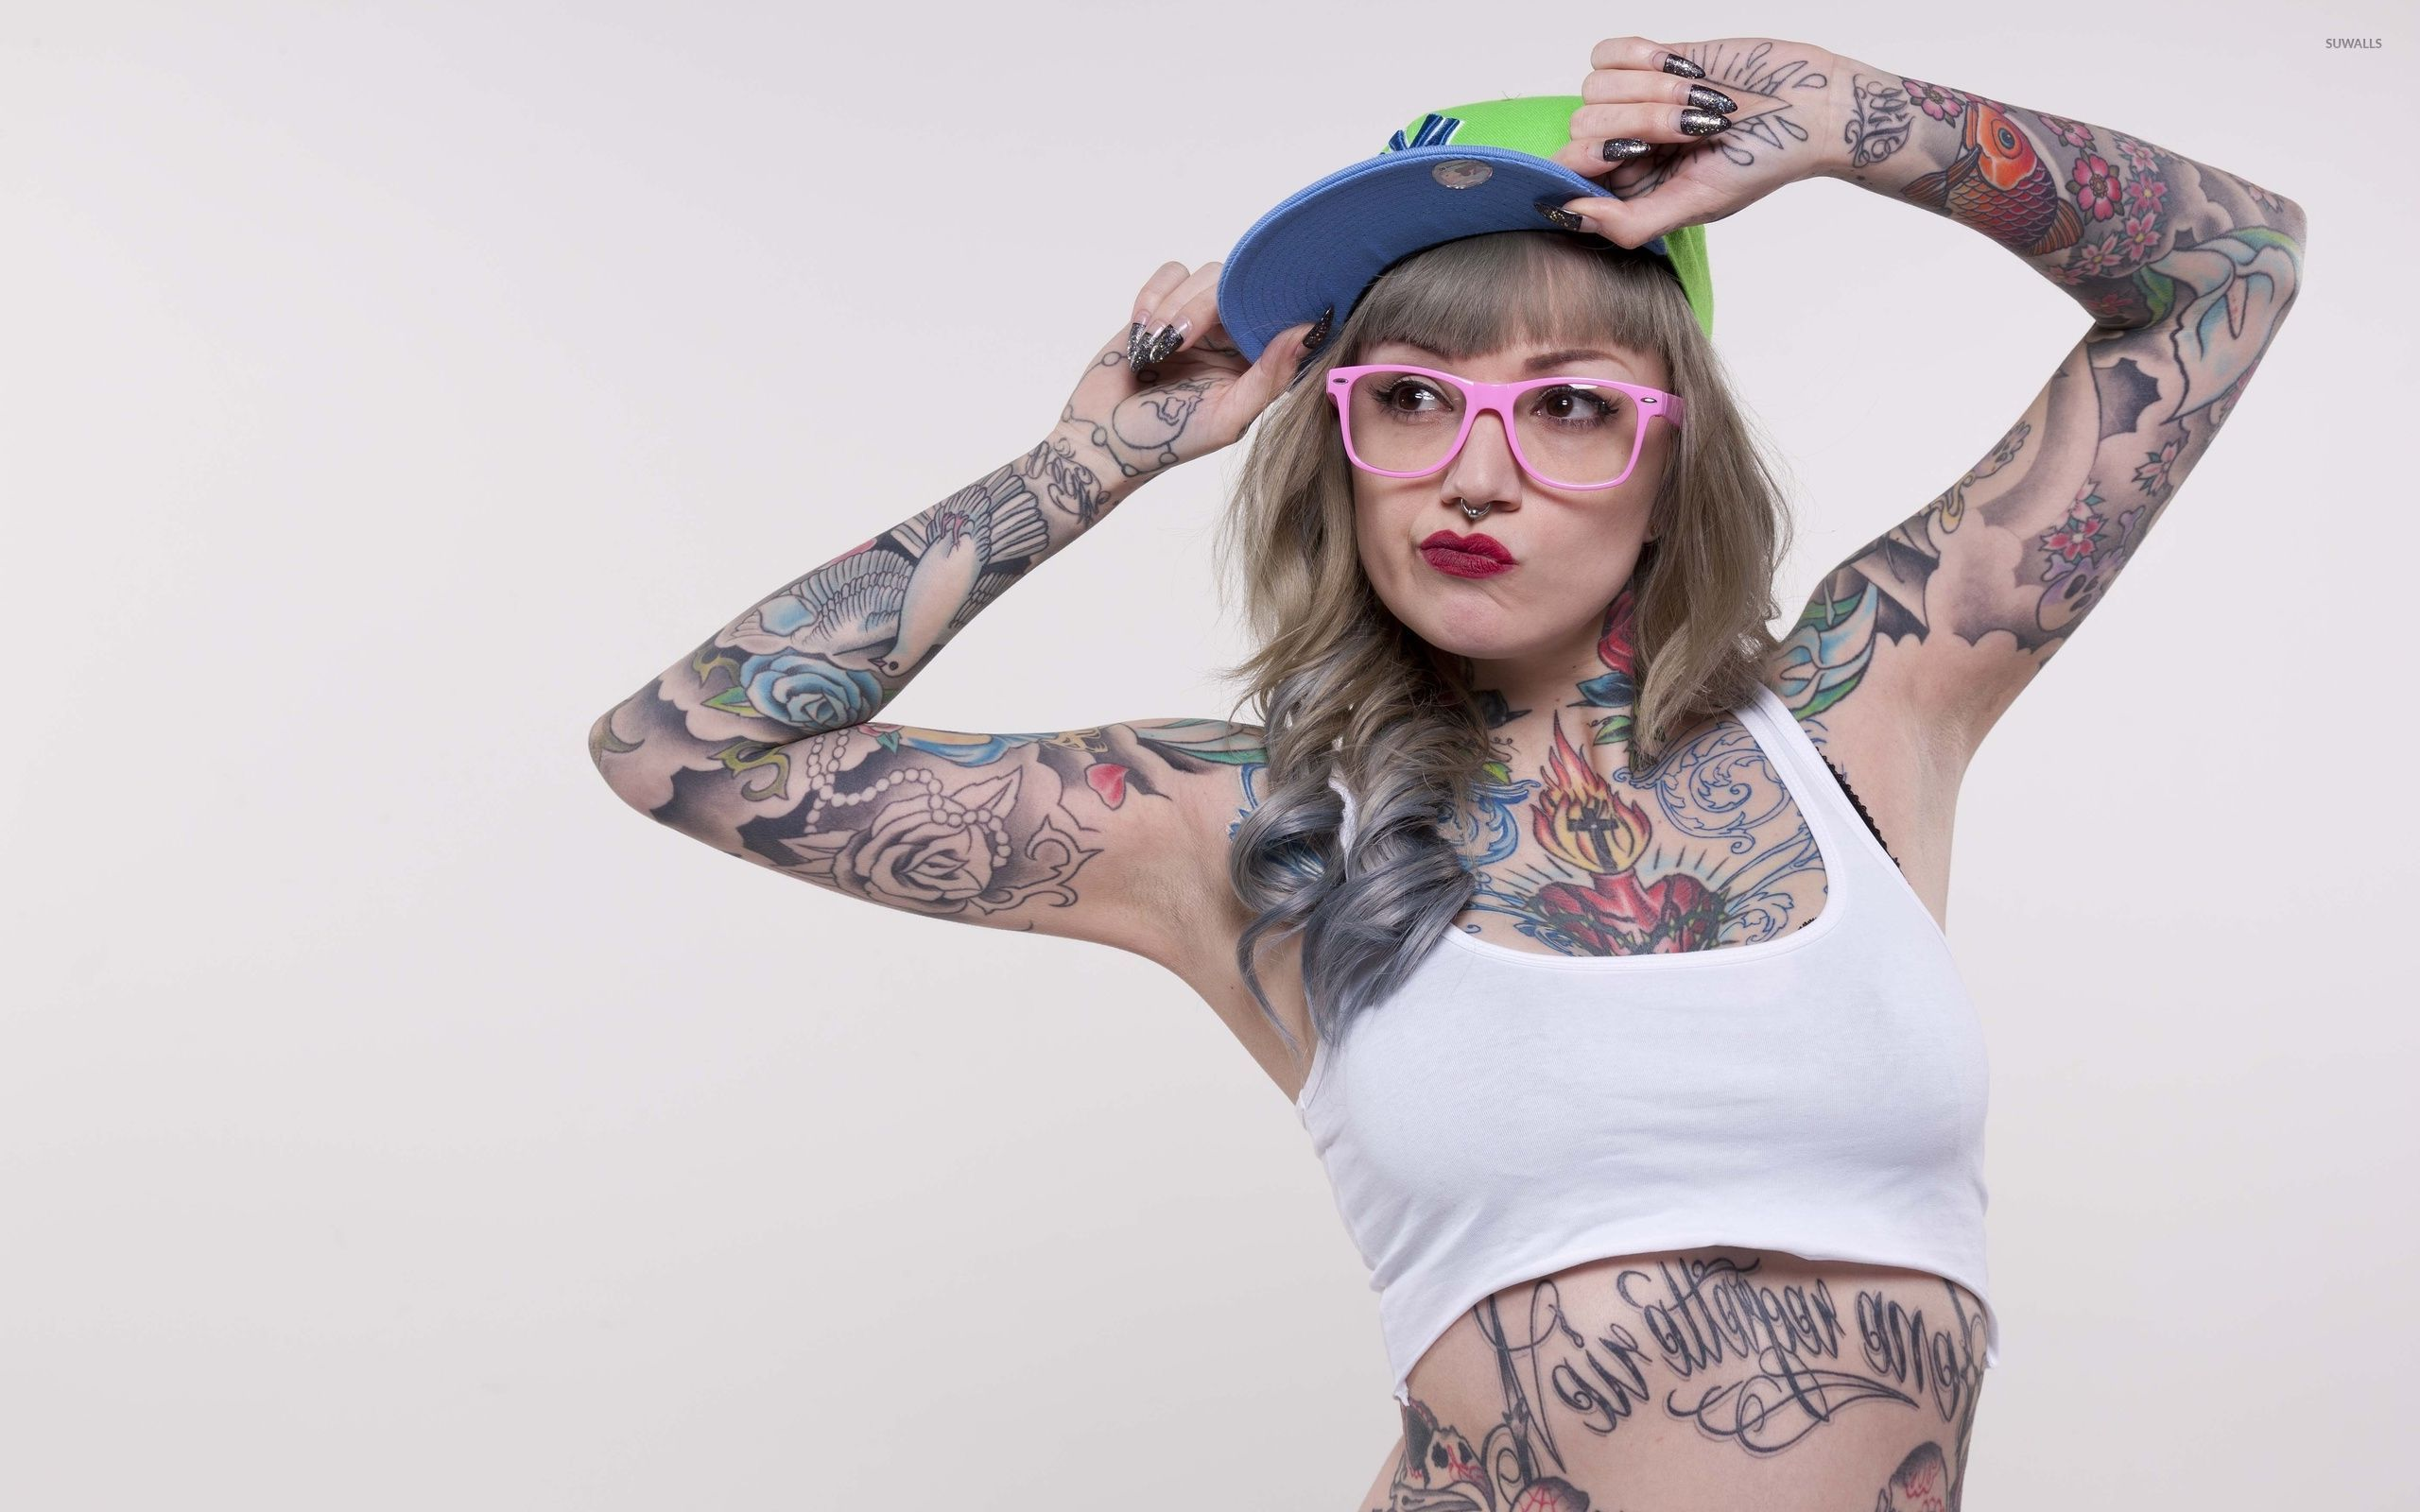 Tattooed girl wallpaper   Girl wallpapers   32679 2560x1600